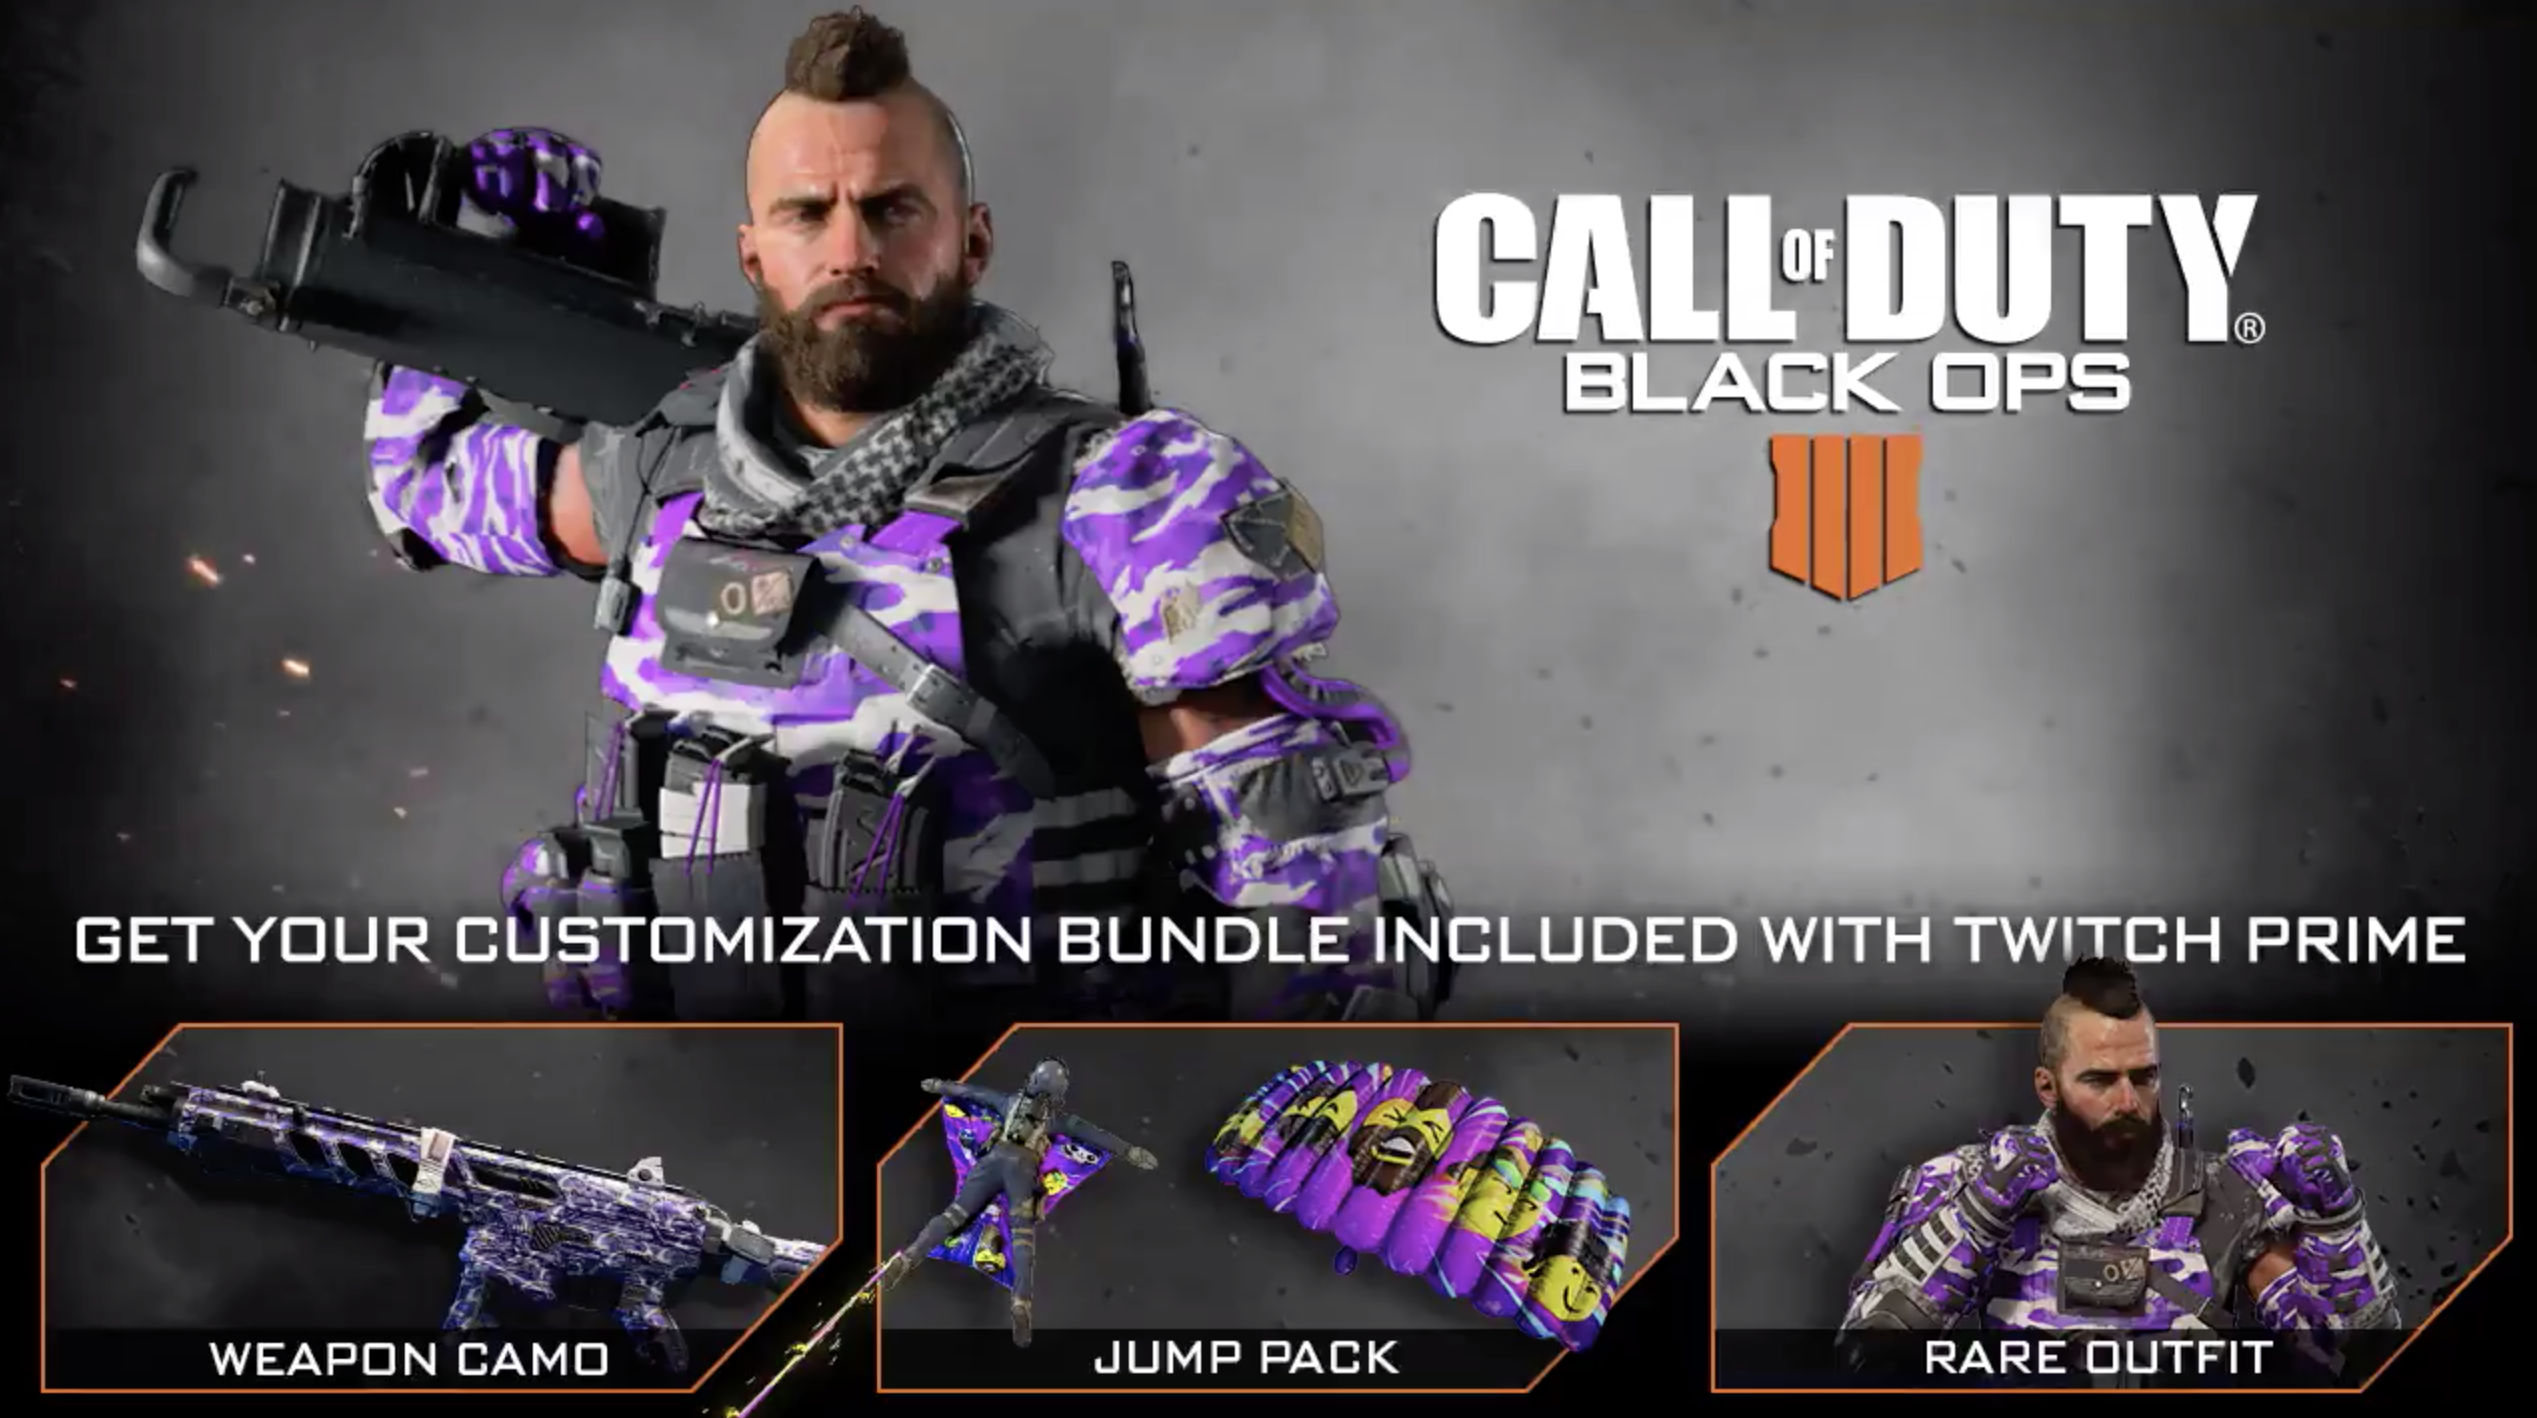 Only one more day to claim Twitch Prime Customization Bundle for